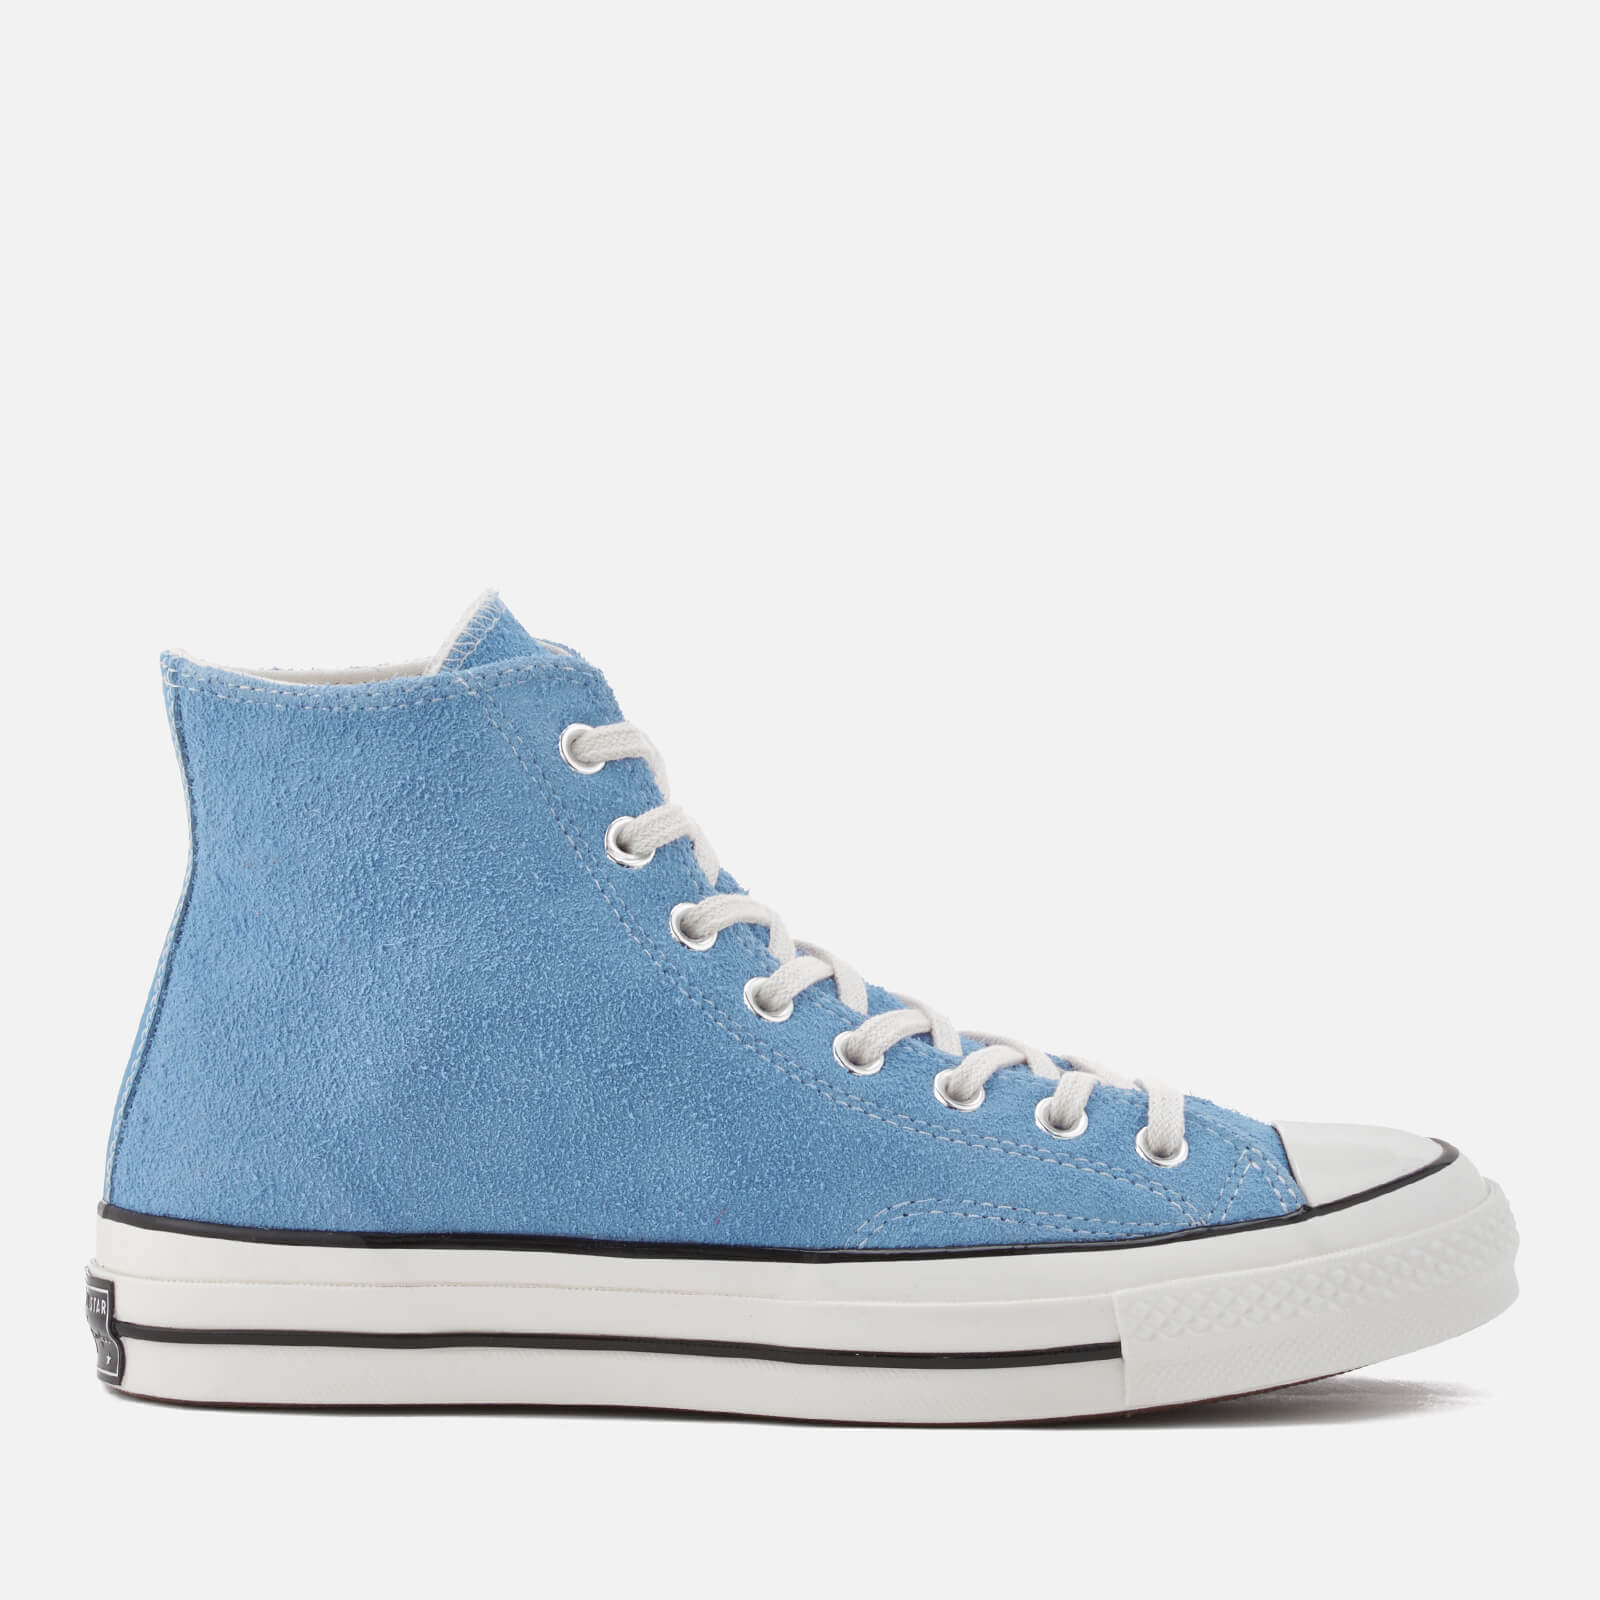 cbdd5cde1c3b9e Converse Men s Chuck Taylor All Star 70 Hi-Top Trainers - Pioneer Blue Egret Egret  - Free UK Delivery over £50